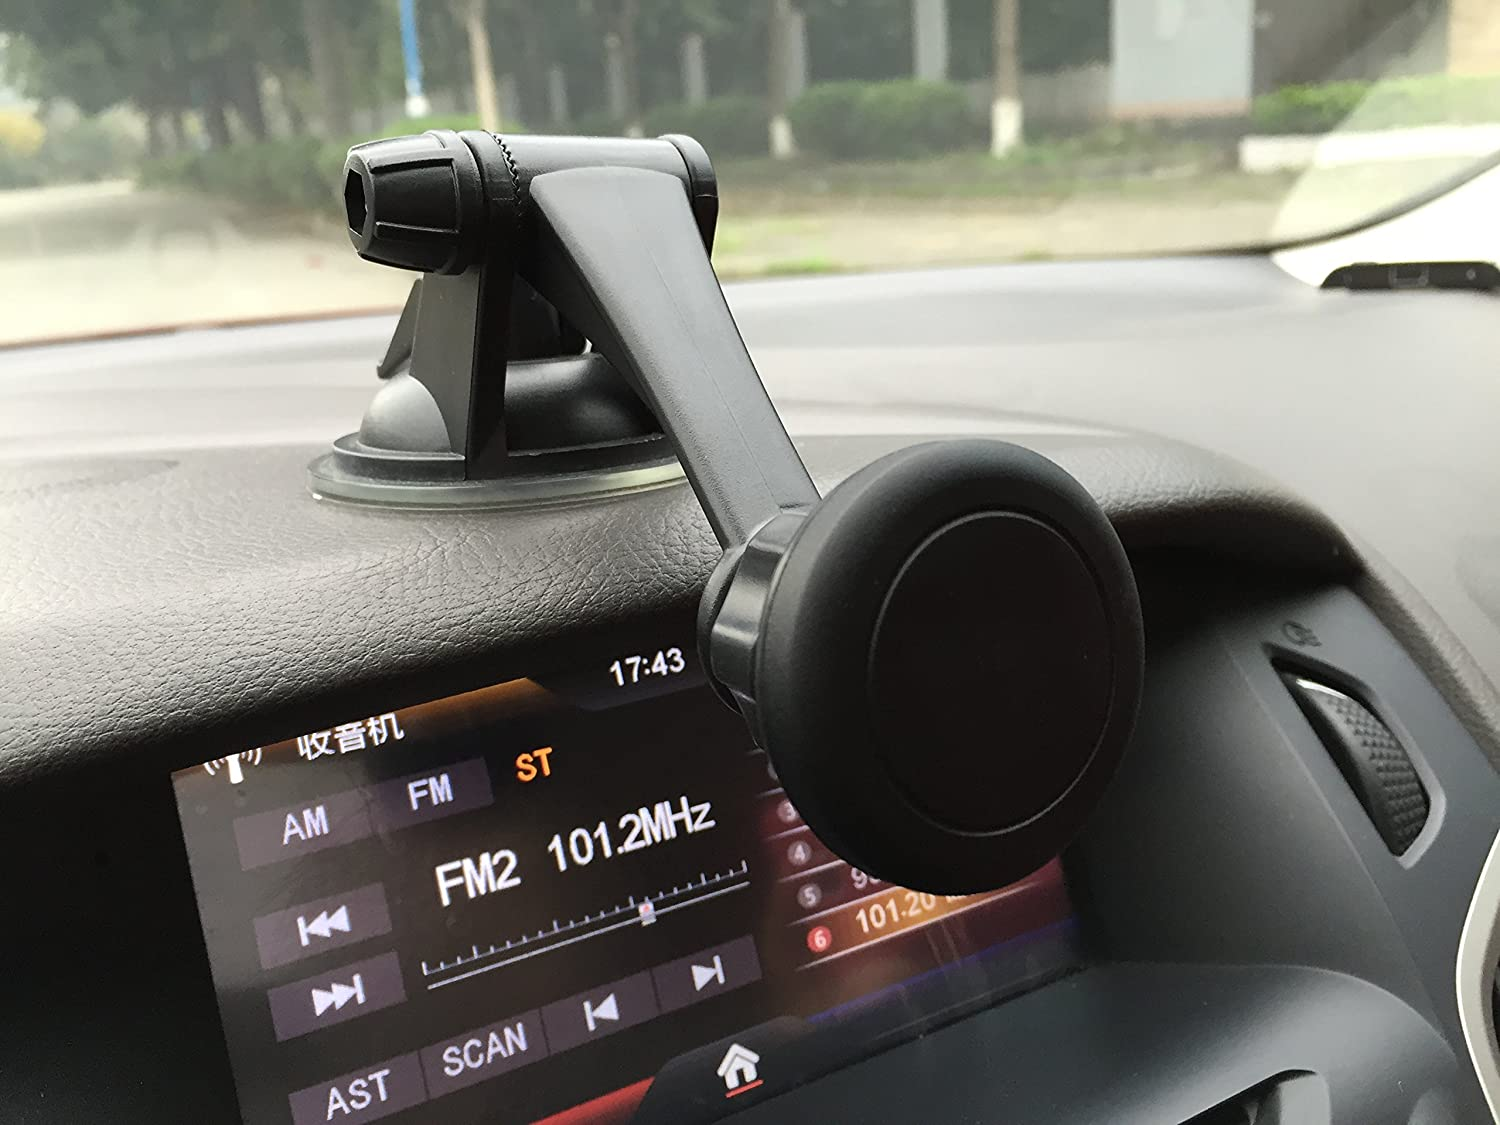 Windshield Desk Etc Grips to Dashboard Gritech Car Mount the Magnetic Cell Phone Mount Holder for Car Home /& Travel Cradle-less For Mobile Phones//tablets//gps//small Tablets Hello2C Mall 4351536499